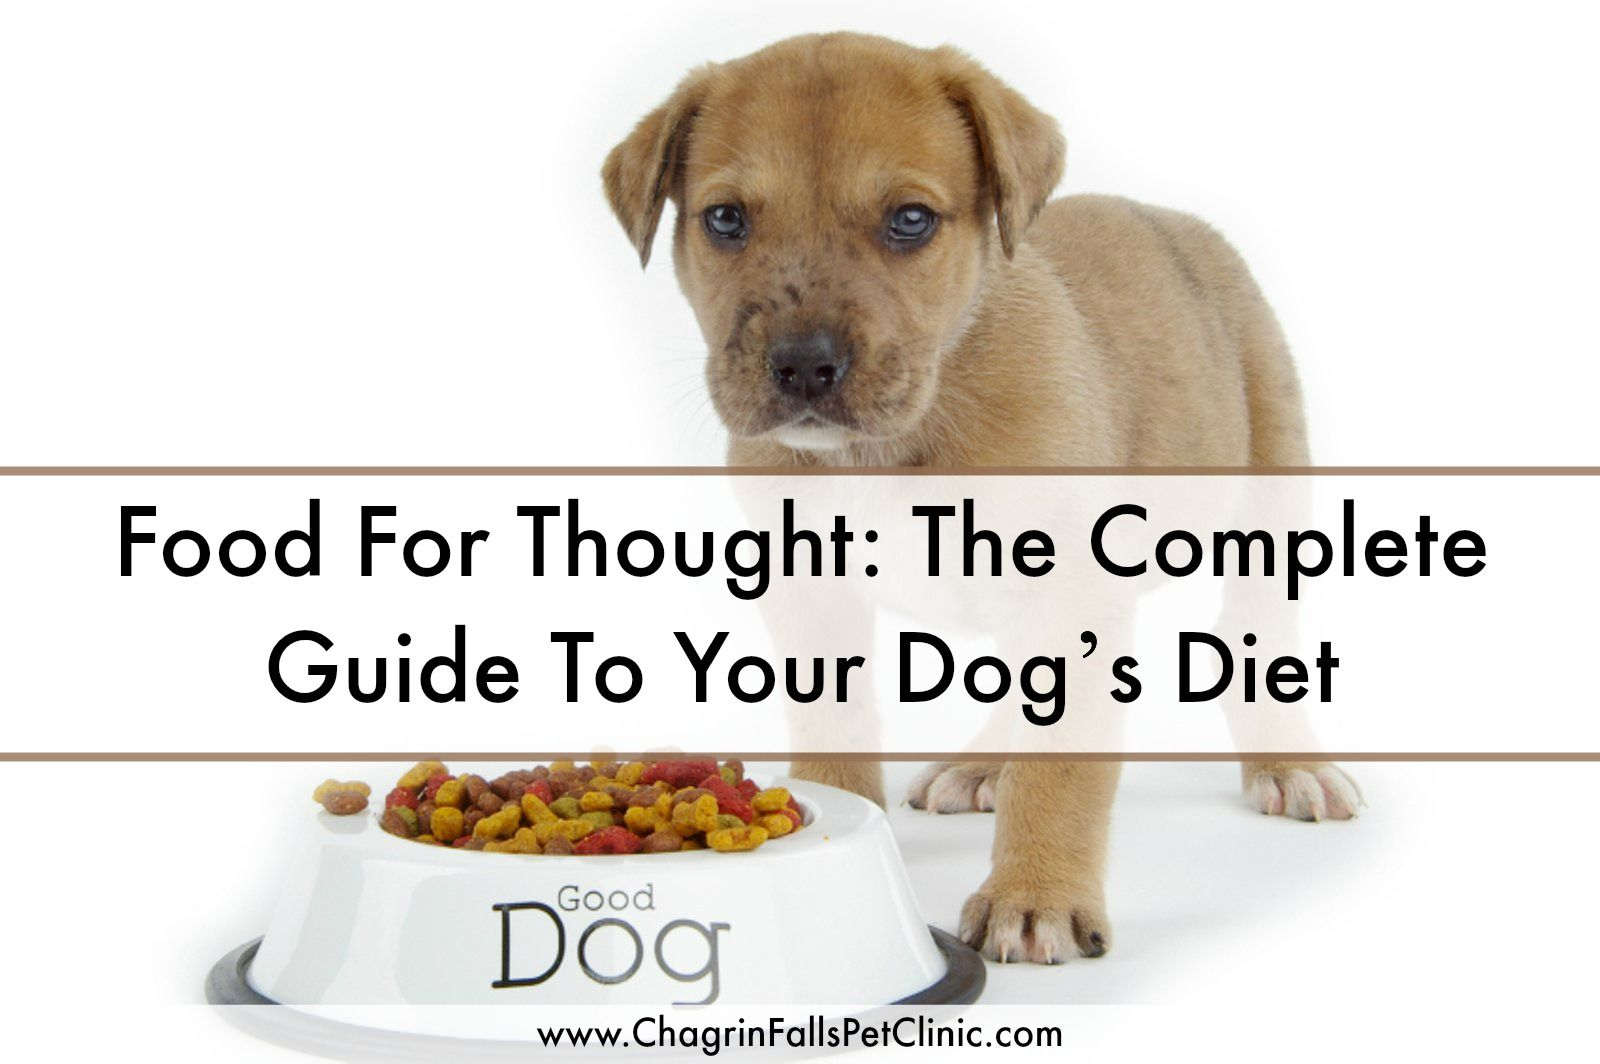 Food For Thought The Complete Guide To Your Dog S Diet Chagrin Falls Veterinary Center Pet Clinic Dog Diet Animal Nutrition Cat Nutrition